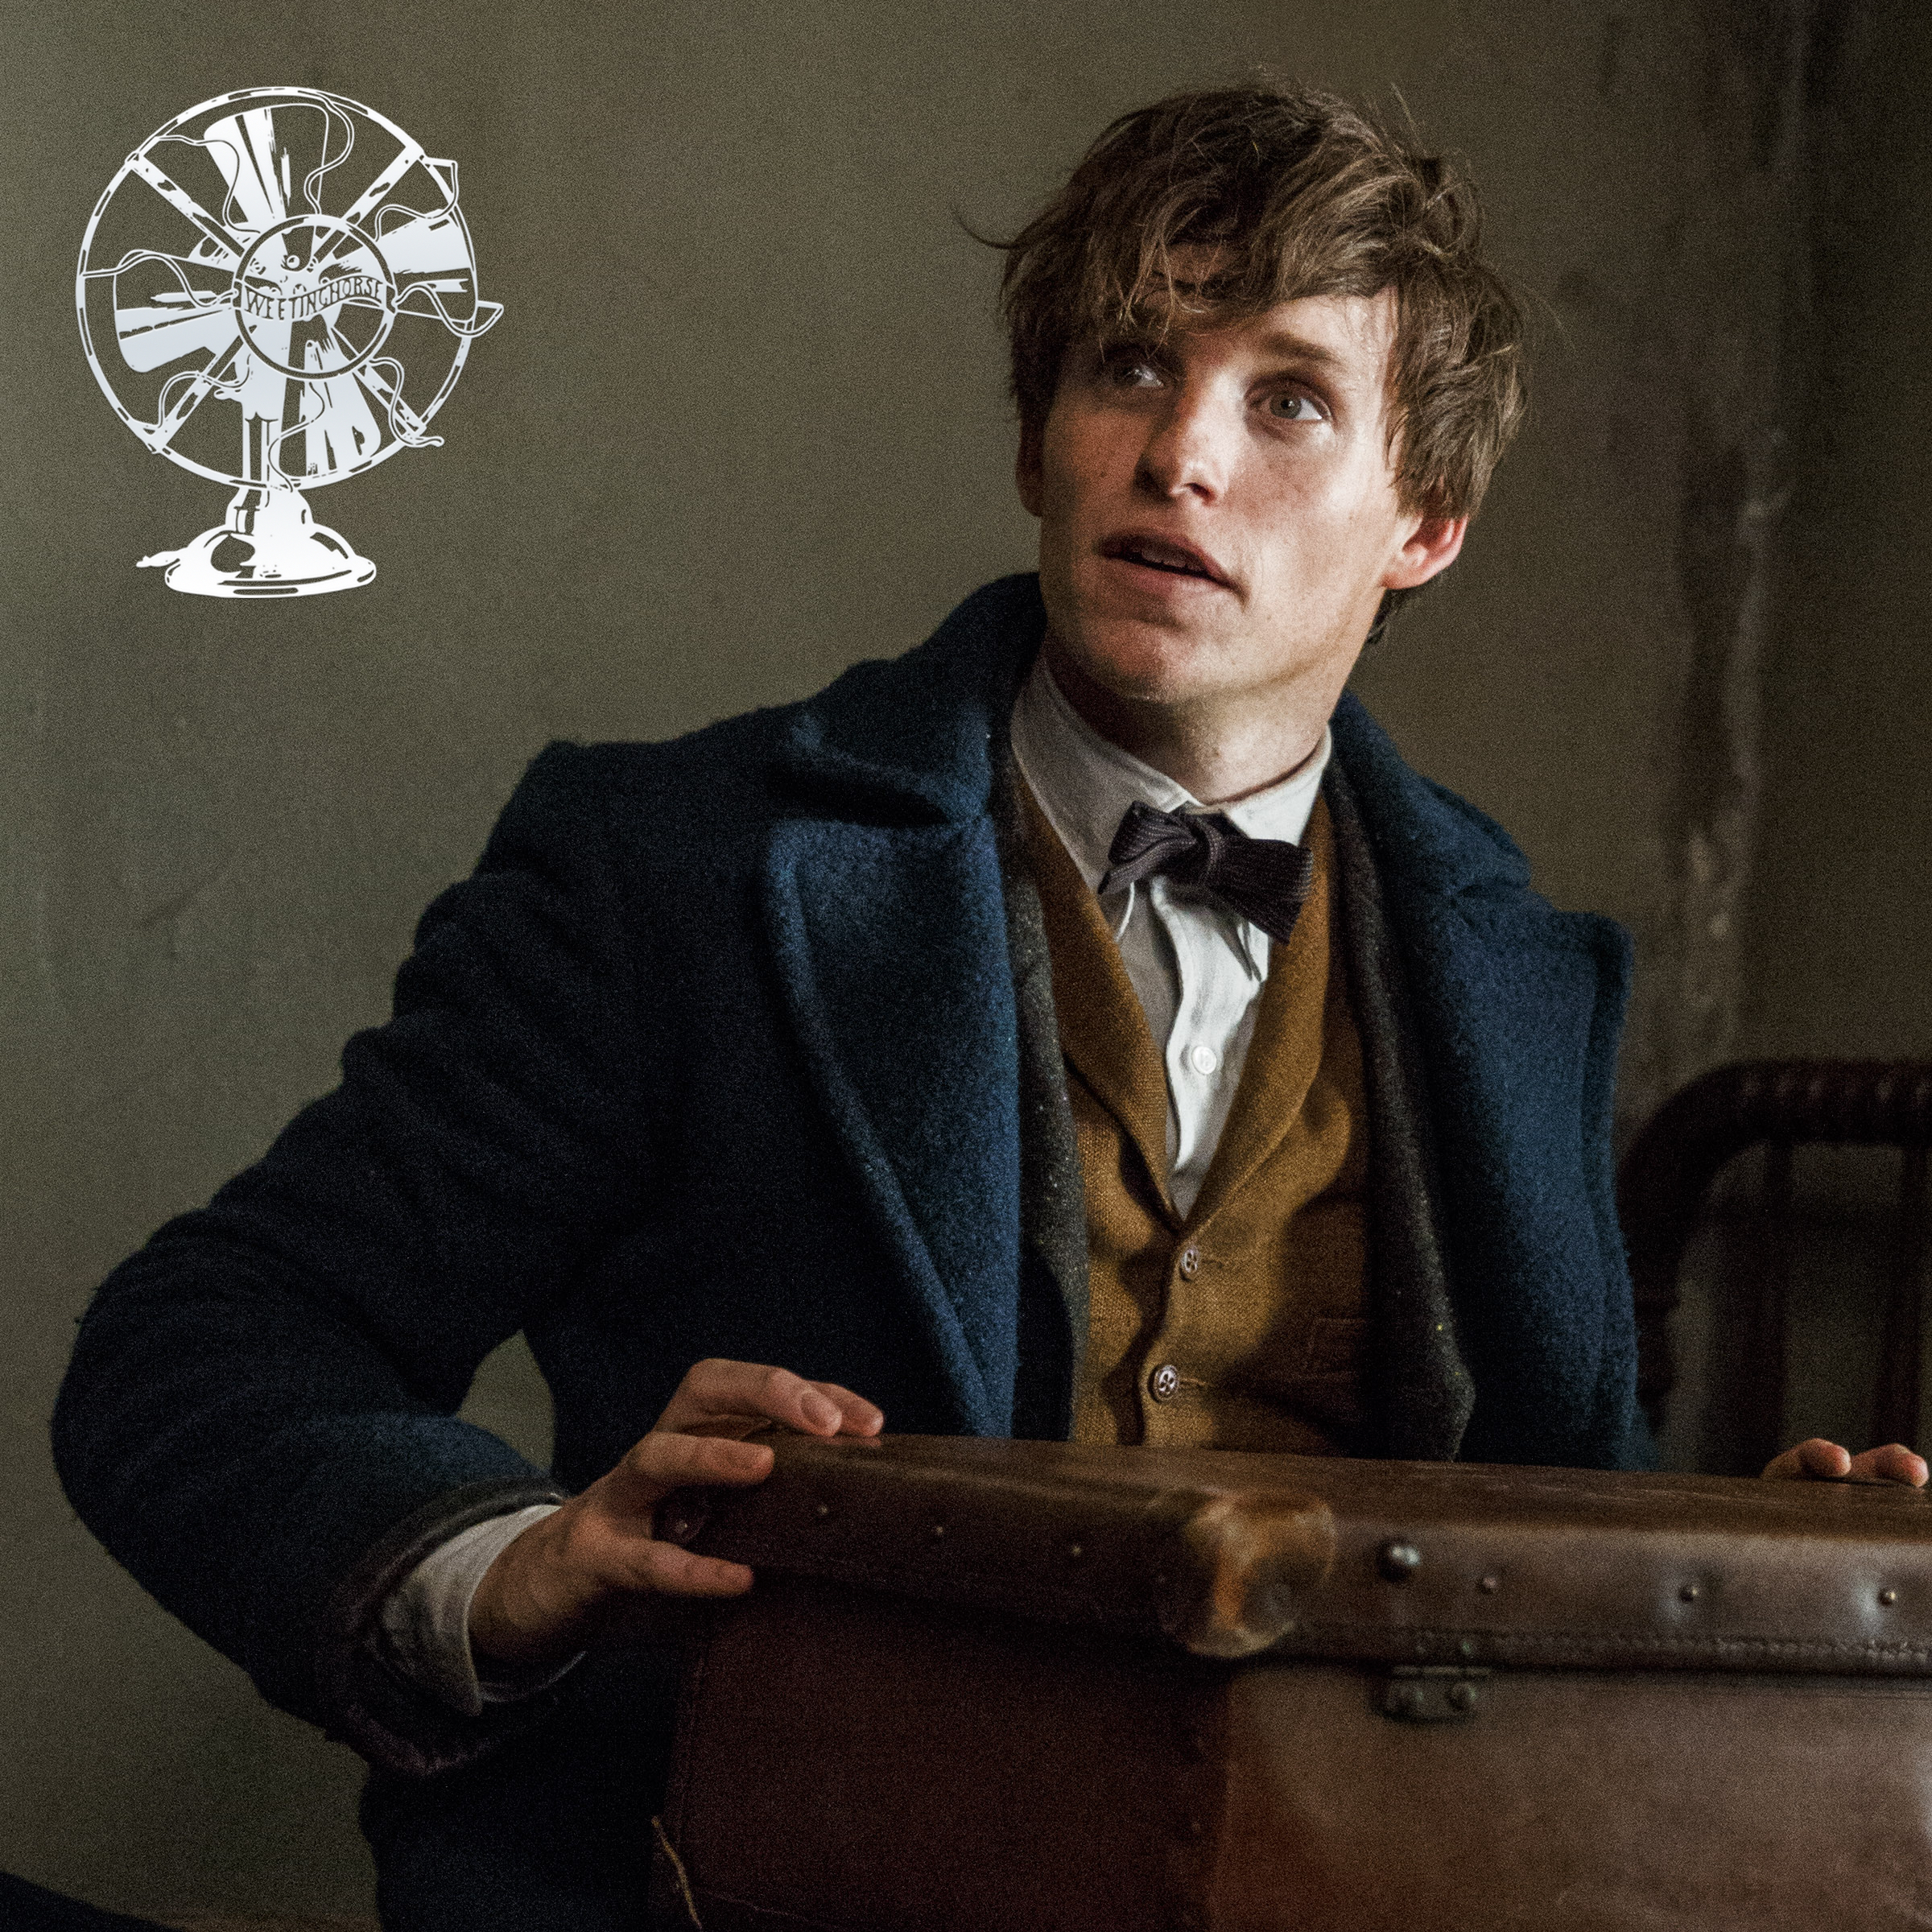 Episode 36's cover: Newt Scamander from  Fantastic Beasts and Where to Find Them.